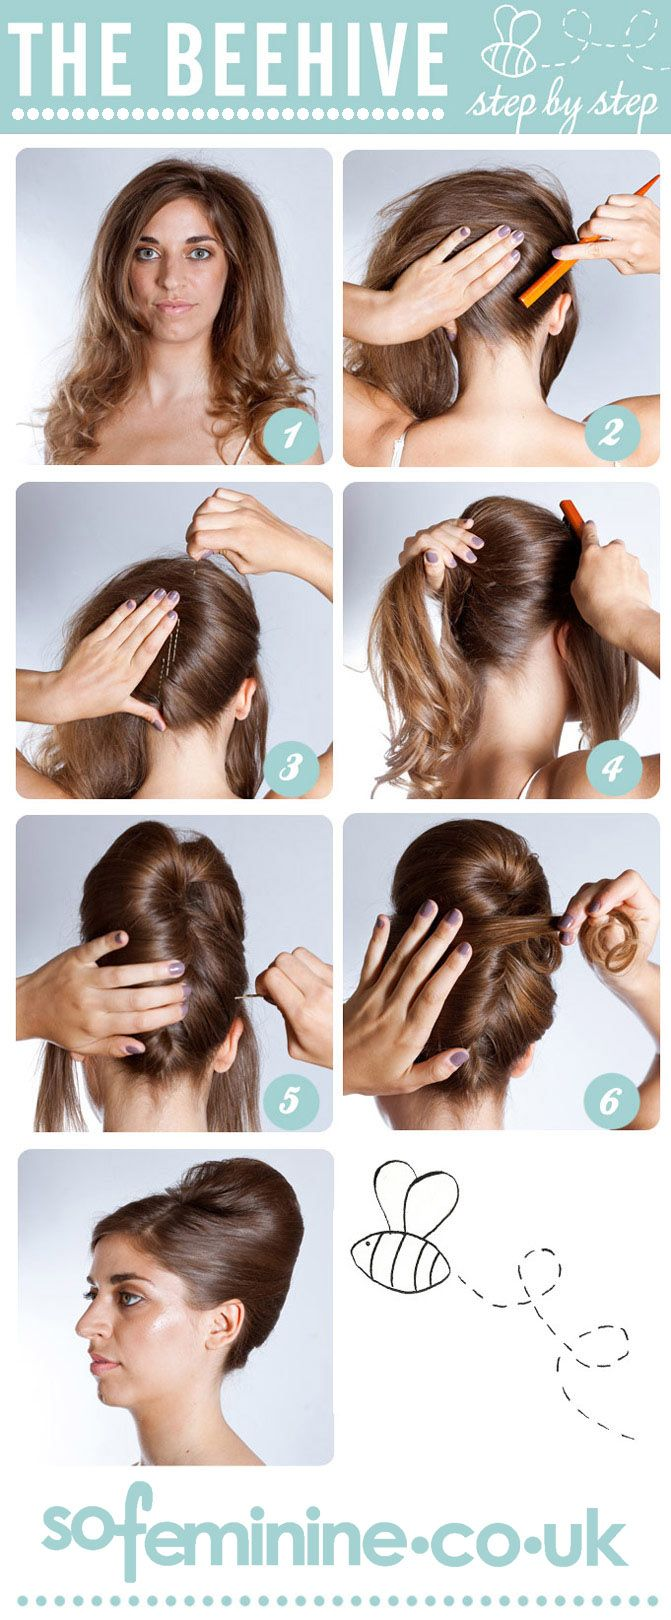 Want to get a beautiful buzzing beehive? Find out how with our step by step guide: http://www.sofeminine.co.uk/hair/how-to-do-a-beehive-hairstyle-som2085.html